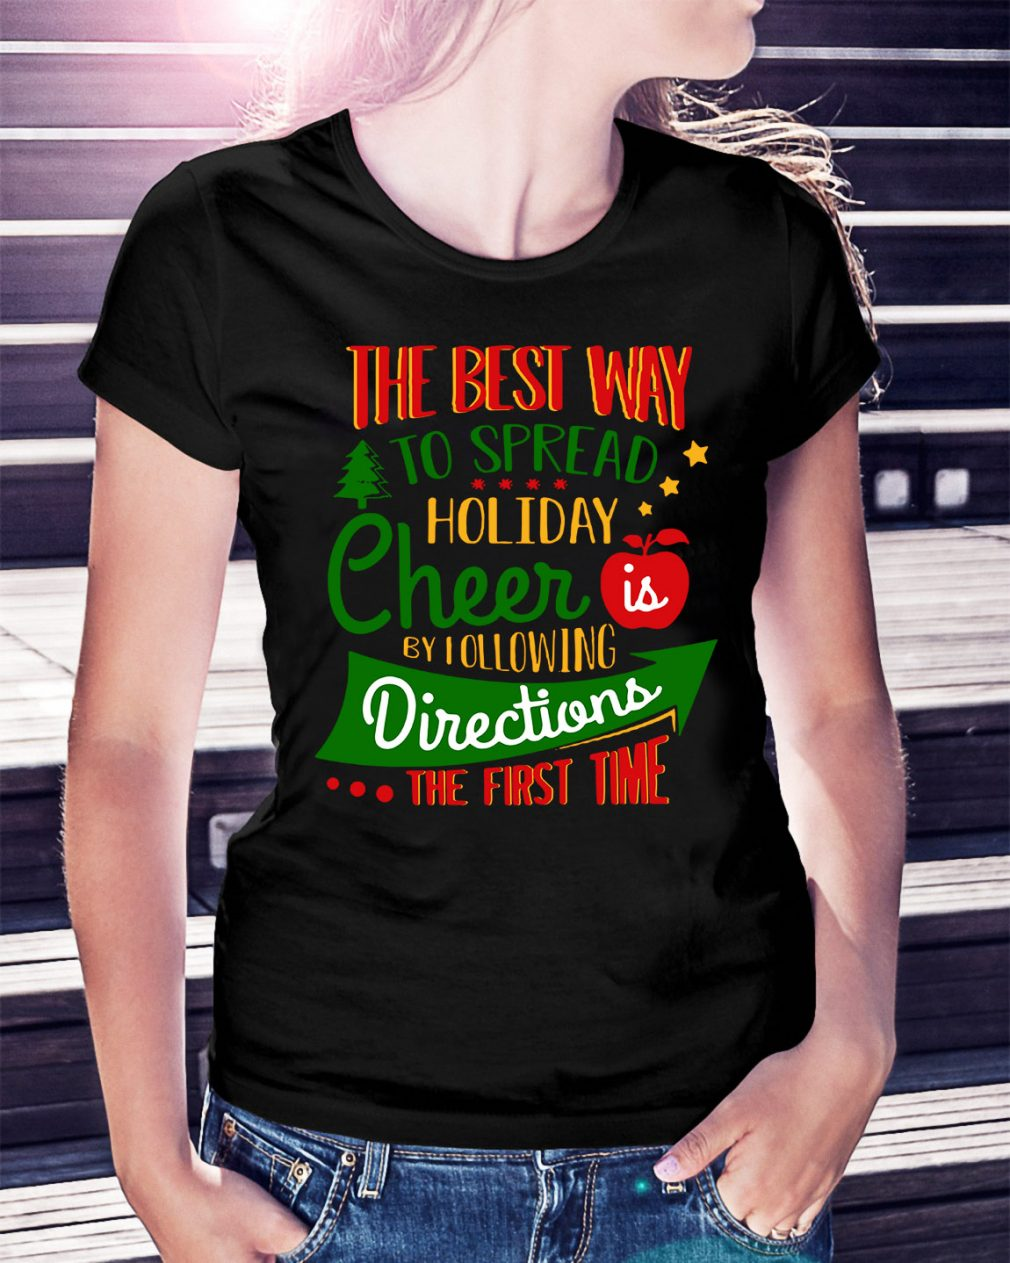 The best way to spread Christmas cheer by I following directions Ladies Tee